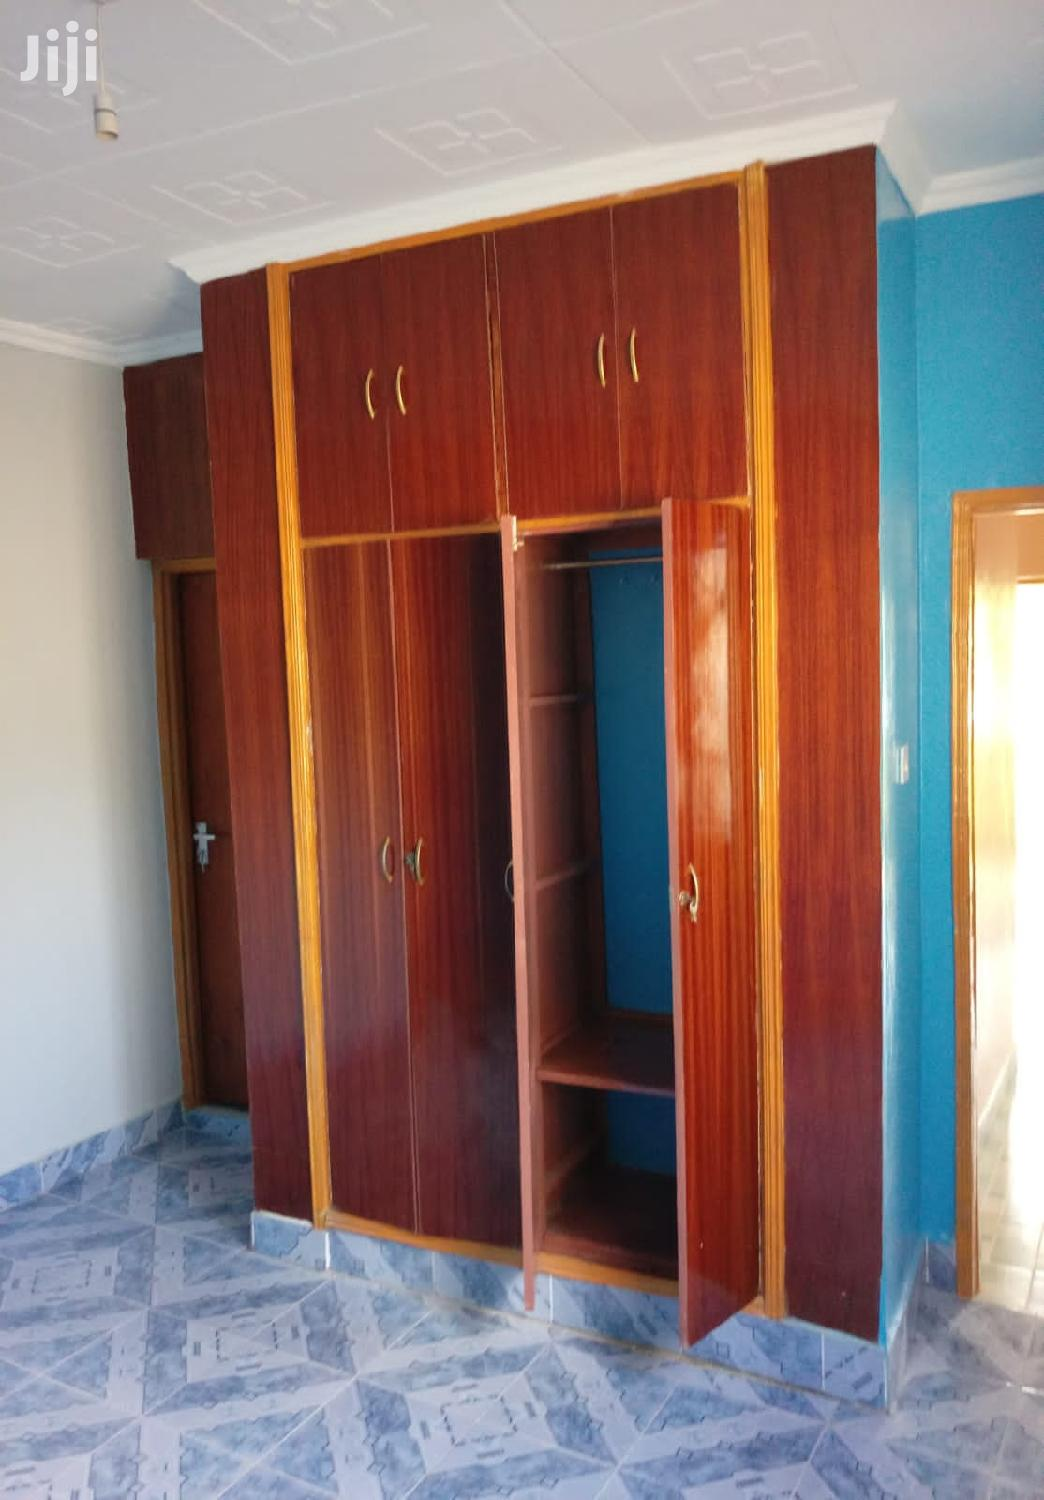 House For Sale | Houses & Apartments For Sale for sale in Ongata Rongai, Kajiado, Kenya